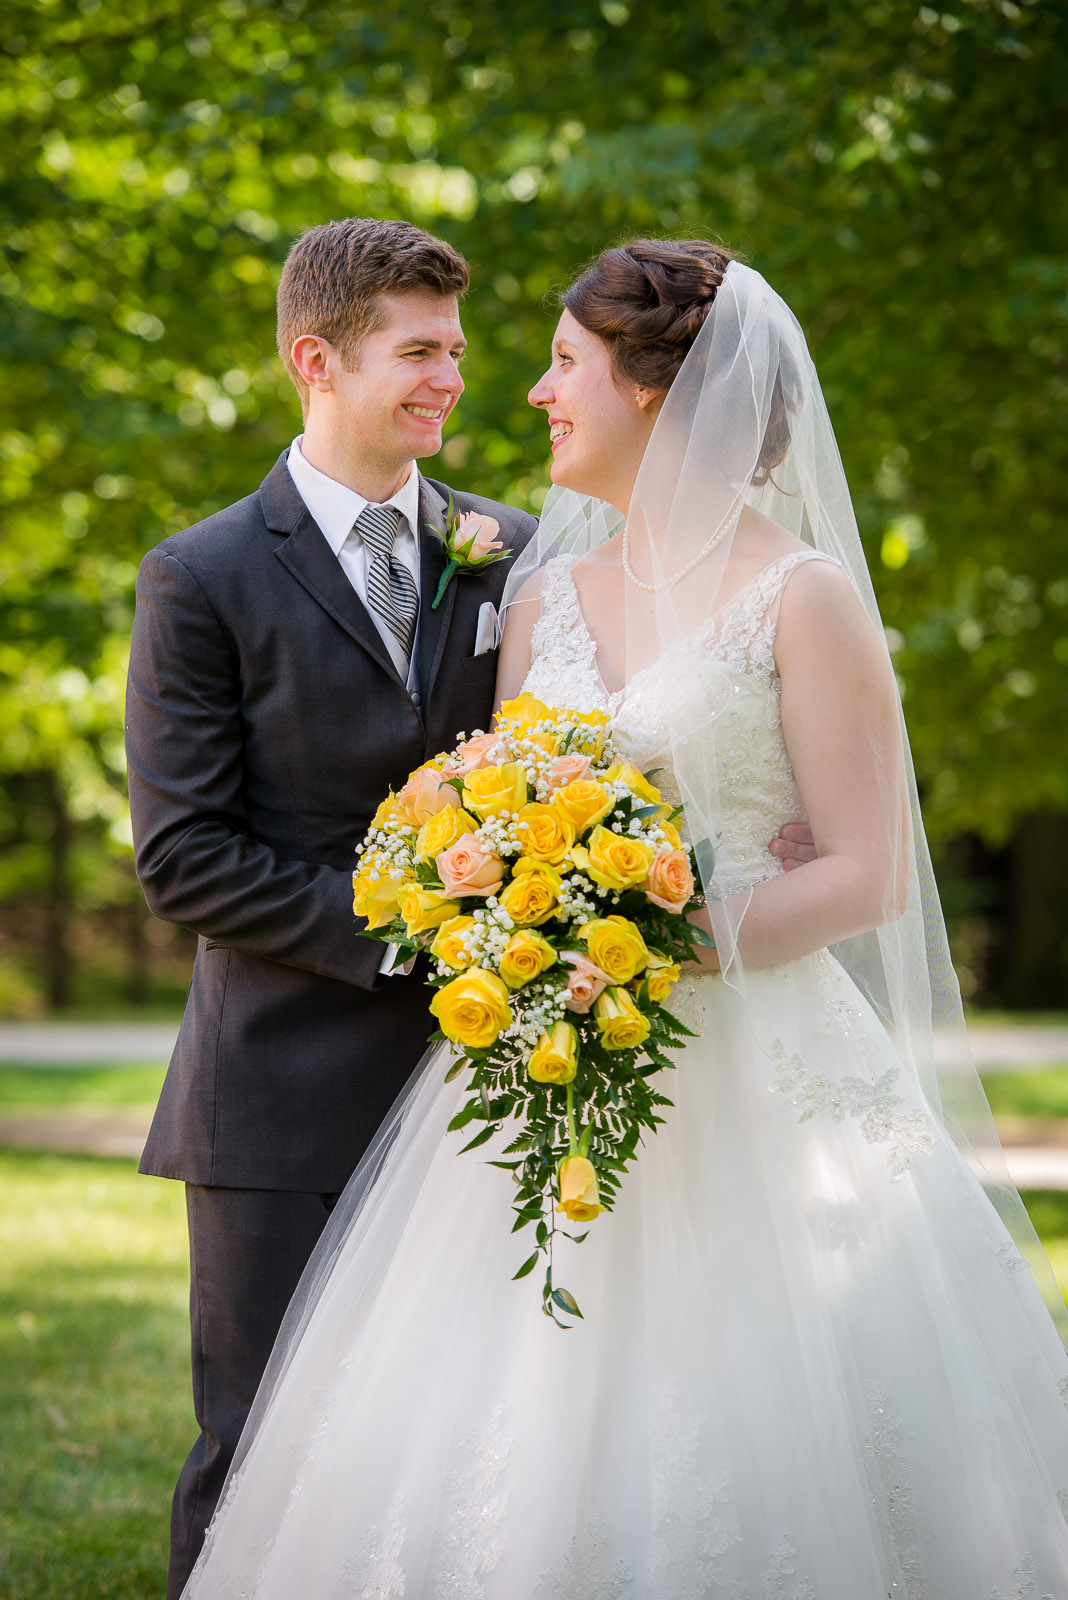 Eric_and_Christy_Photography_Blog_Wedding_Kelly_Michael-27